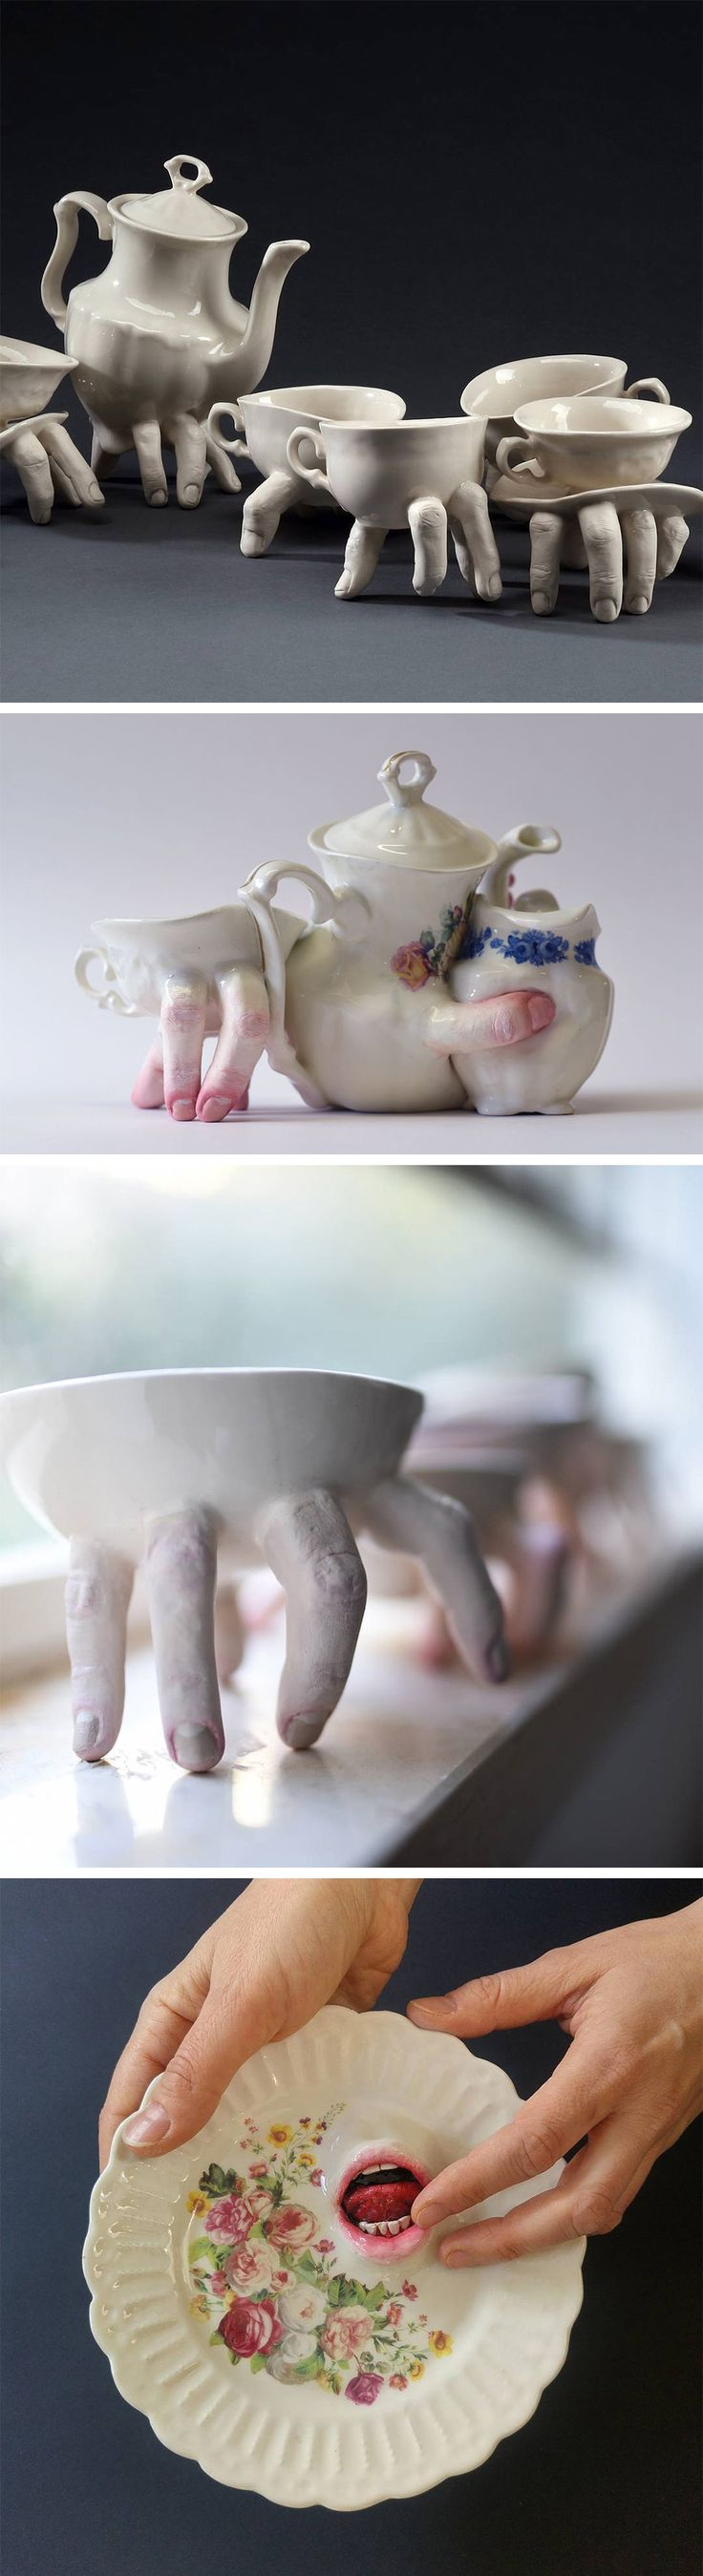 Artist Ronit Baranga's Disturbing Anatomical Dishware Creeps Across Tabletops